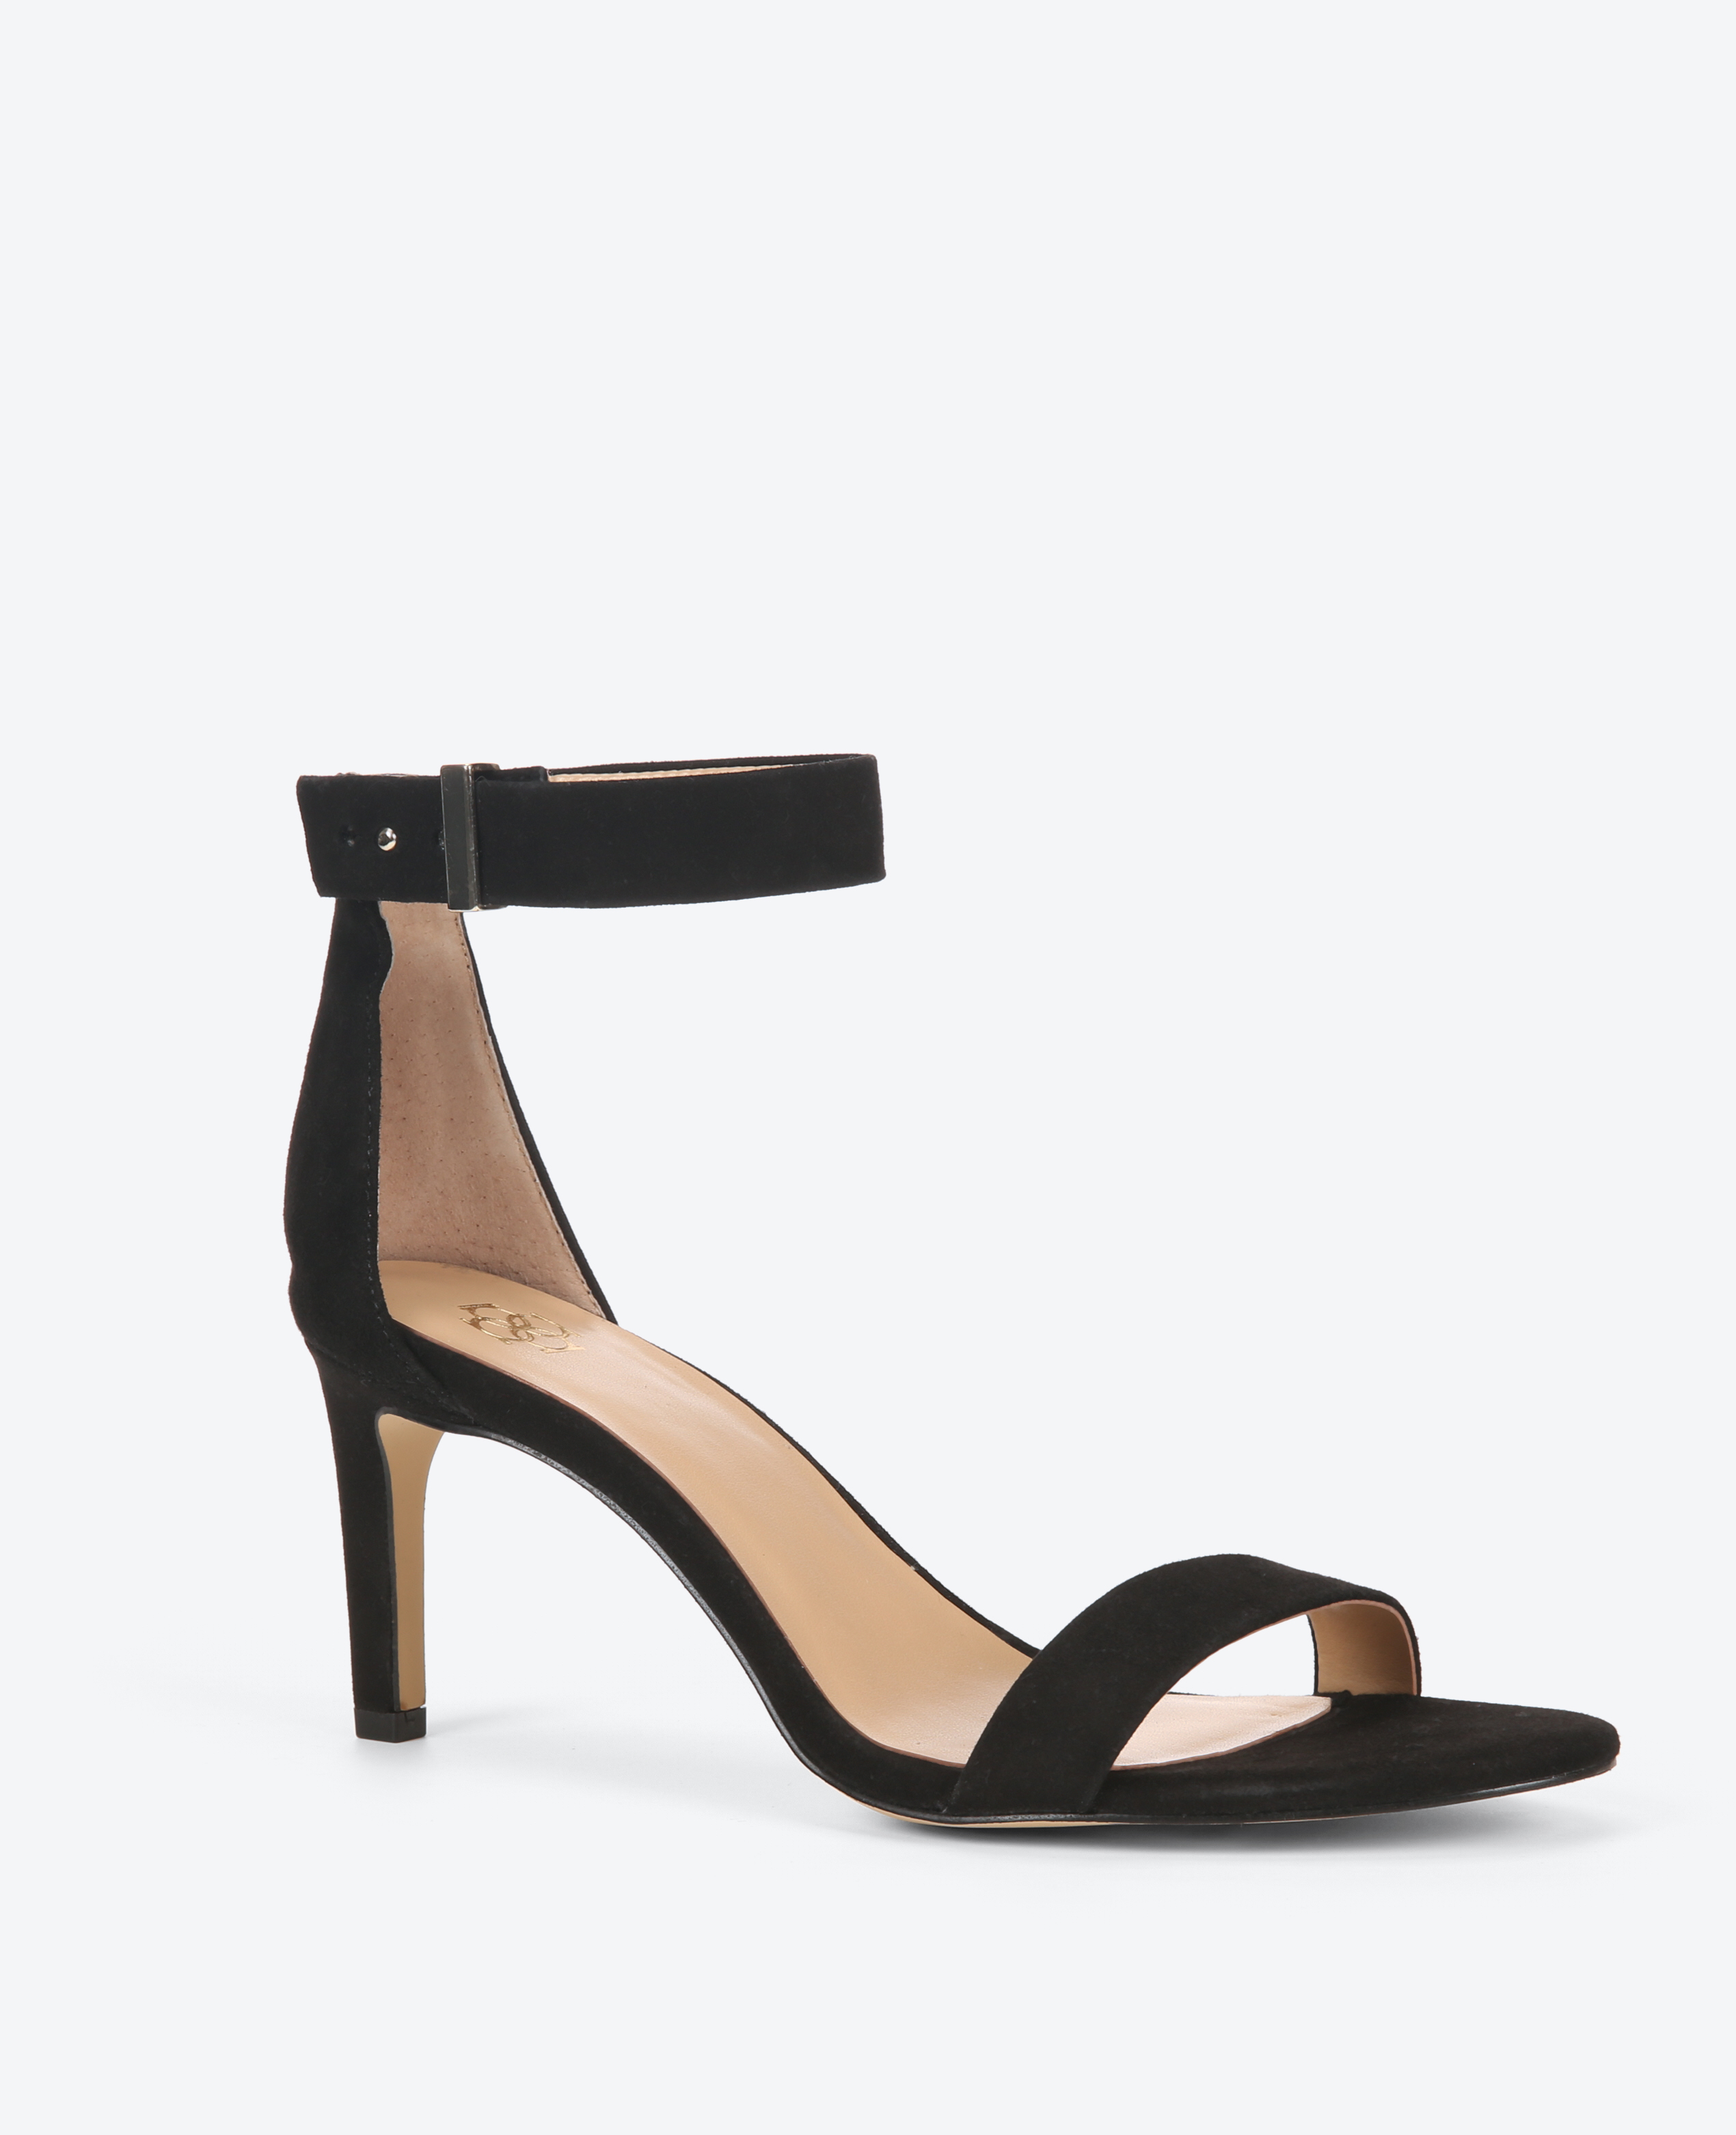 Ann taylor Alaina Suede Ankle Strap Sandals in Black